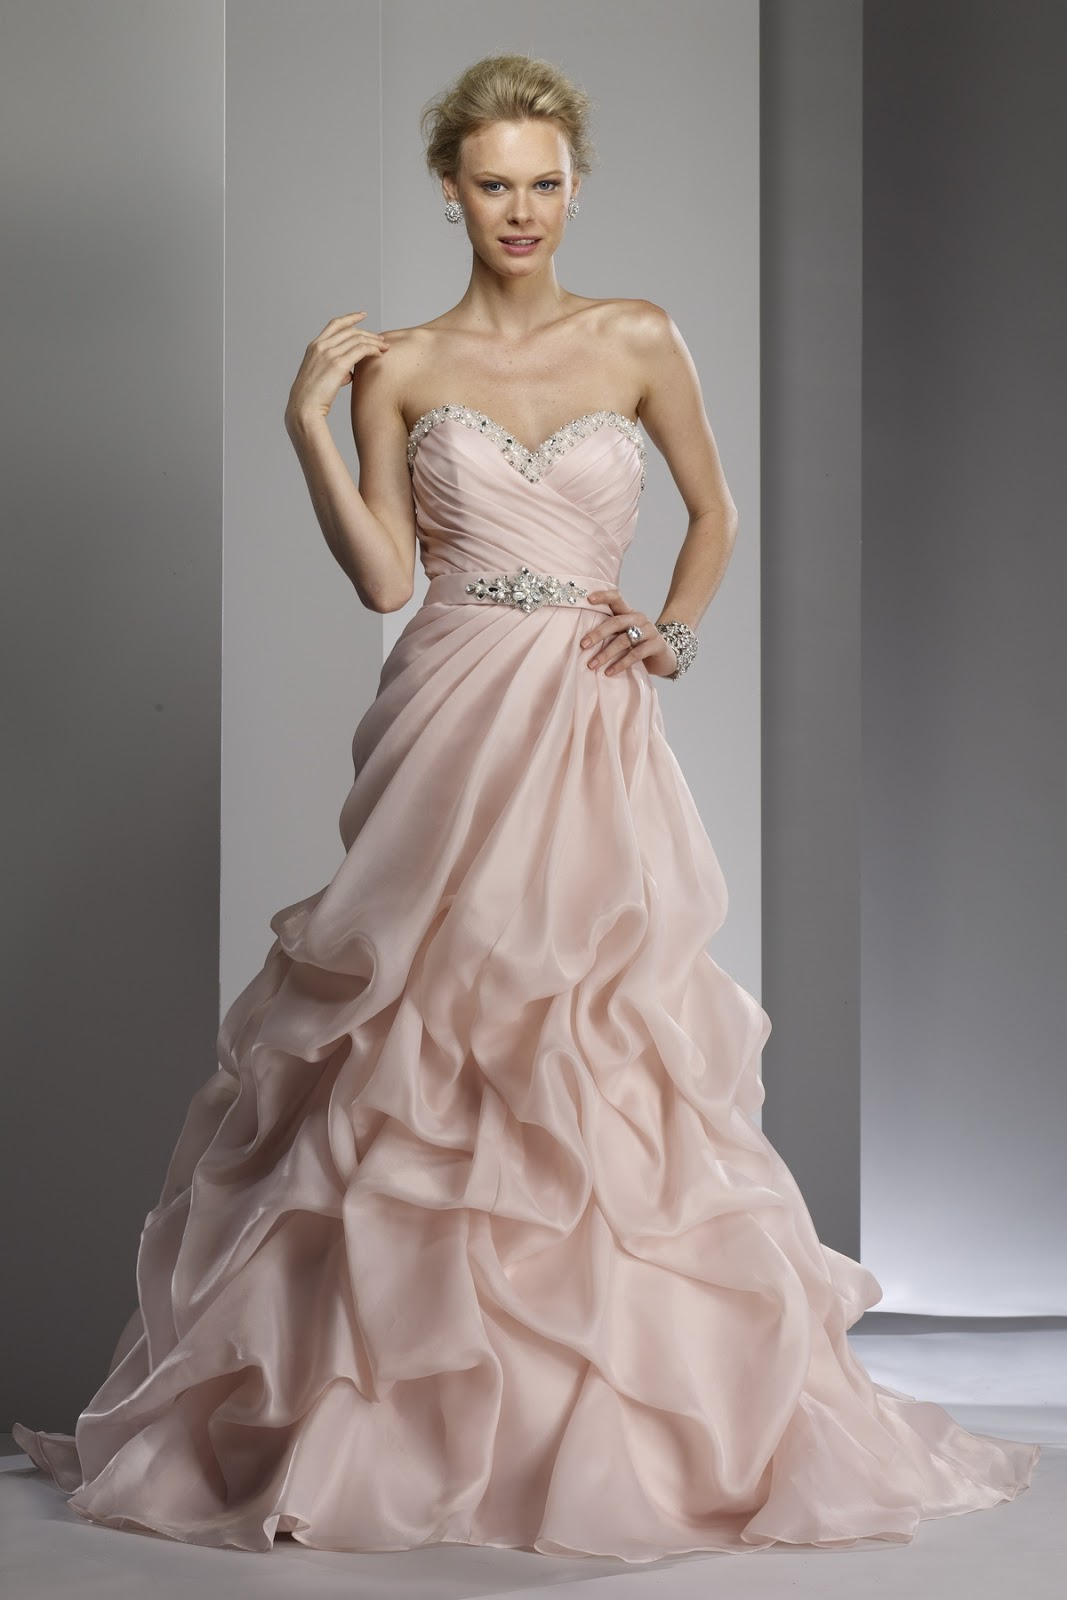 Wedding Dresses: Different type princess wedding clothing